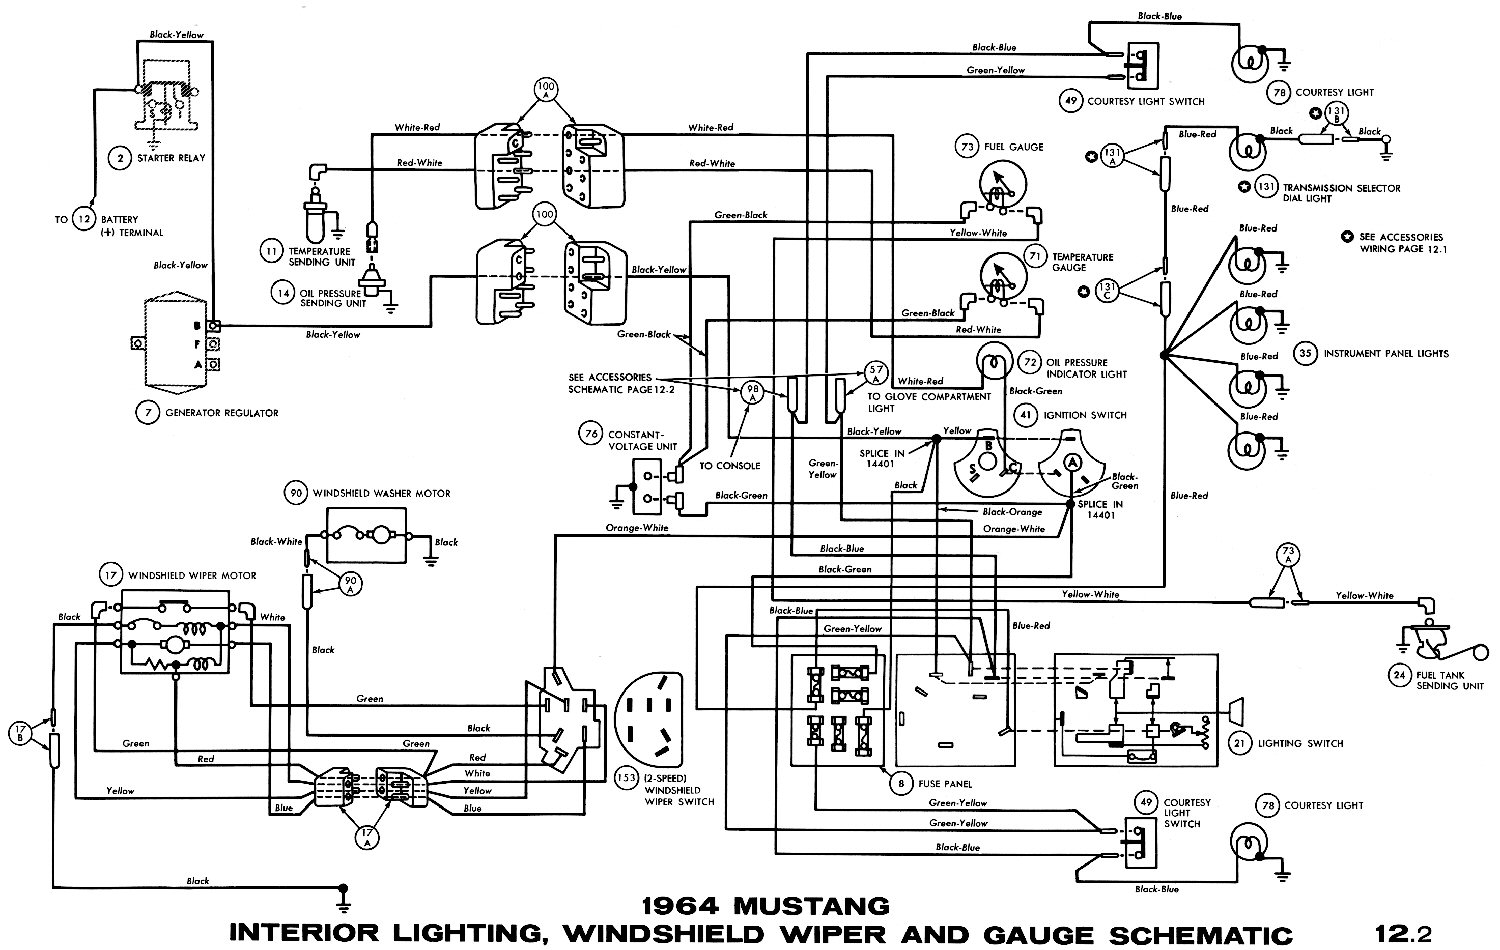 1964k wiring diagram for 1970 ford mustang readingrat net 1965 mustang heater wiring diagram at cos-gaming.co